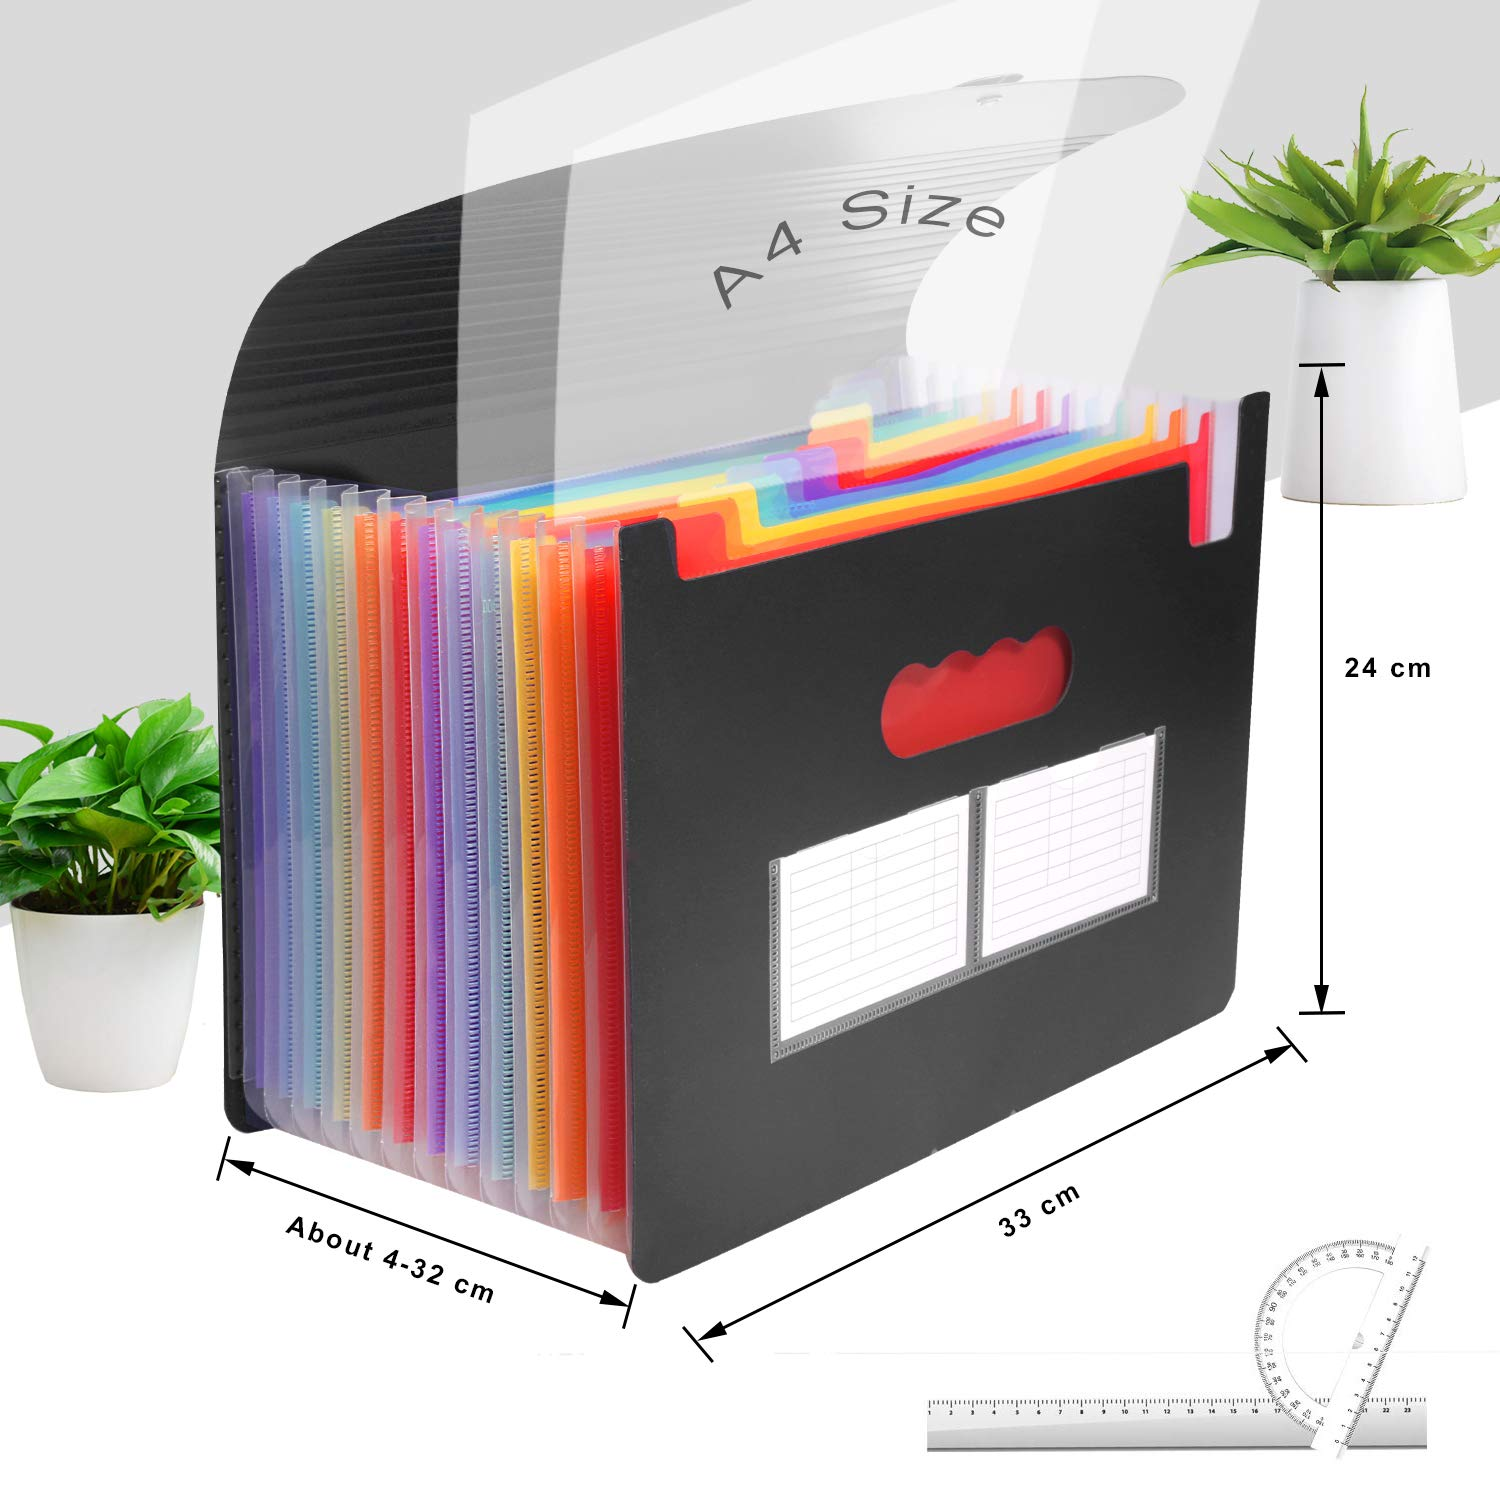 Soneer File Organiser,13 Pockets Expanding File Folder,A4 Accordion Wallet Folder Portable Documents Holder with Lid,Multicolor Rainbow for Office//Business//School